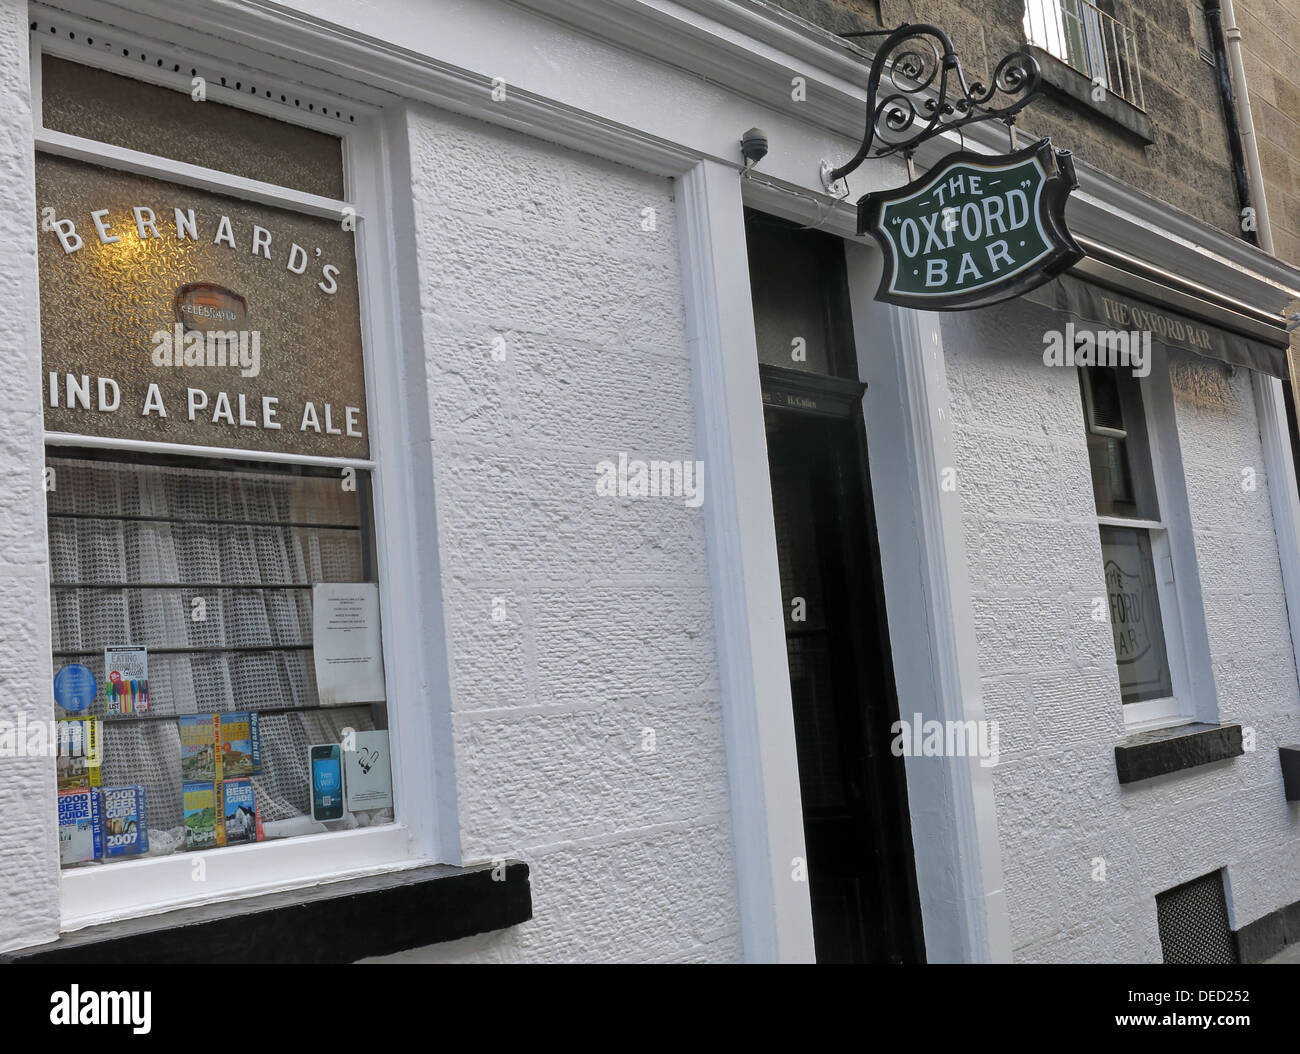 Oxford Bar Exterior A Public house situated on Young Street, in the New Town of Edinburgh, Scotland. Inspector Rebus's local - Stock Image